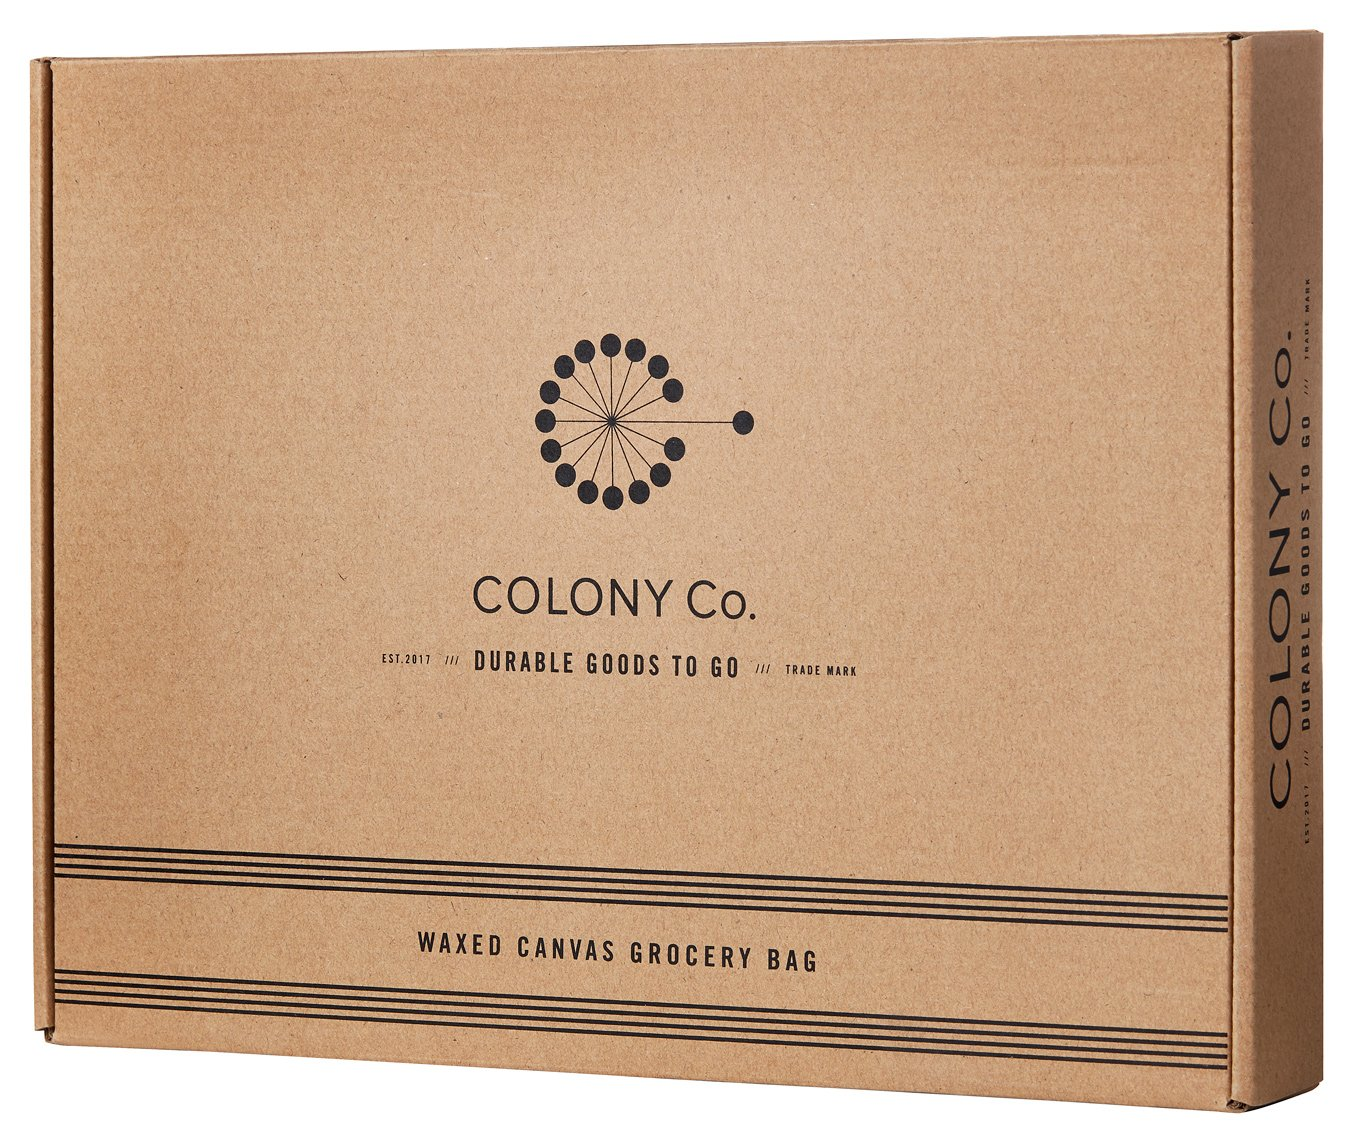 Reusable Grocery Bag | Waxed Canvas | Heavy-Duty | Biodegradable | Foldable | Brown by COLONY CO (Image #4)